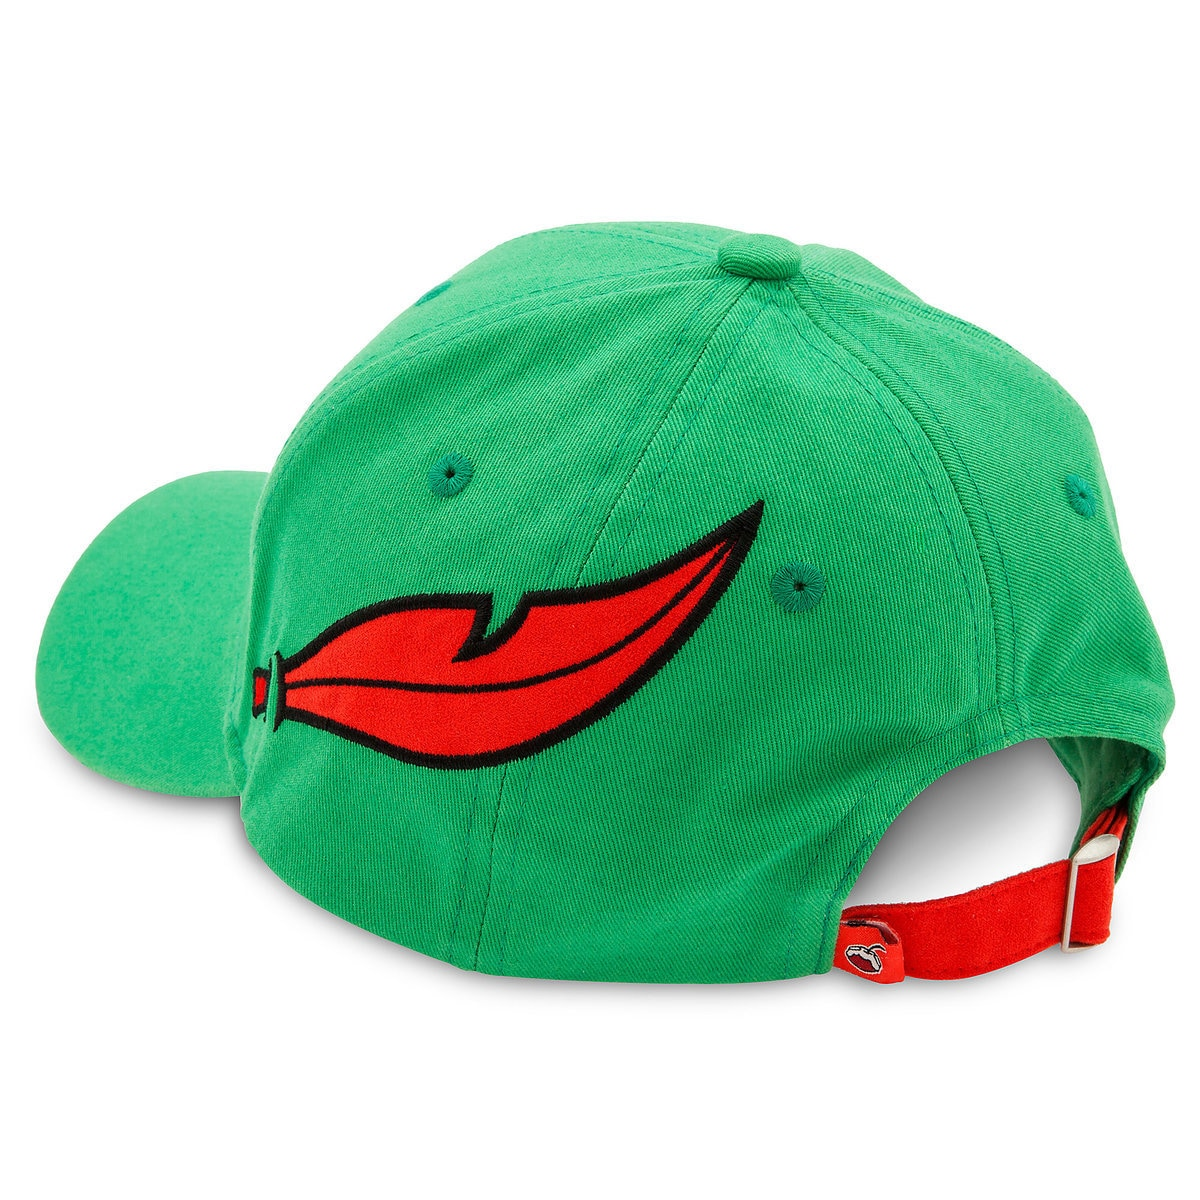 9d080c45220dc Product Image of Peter Pan Baseball Cap for Adults by Cakeworthy   2